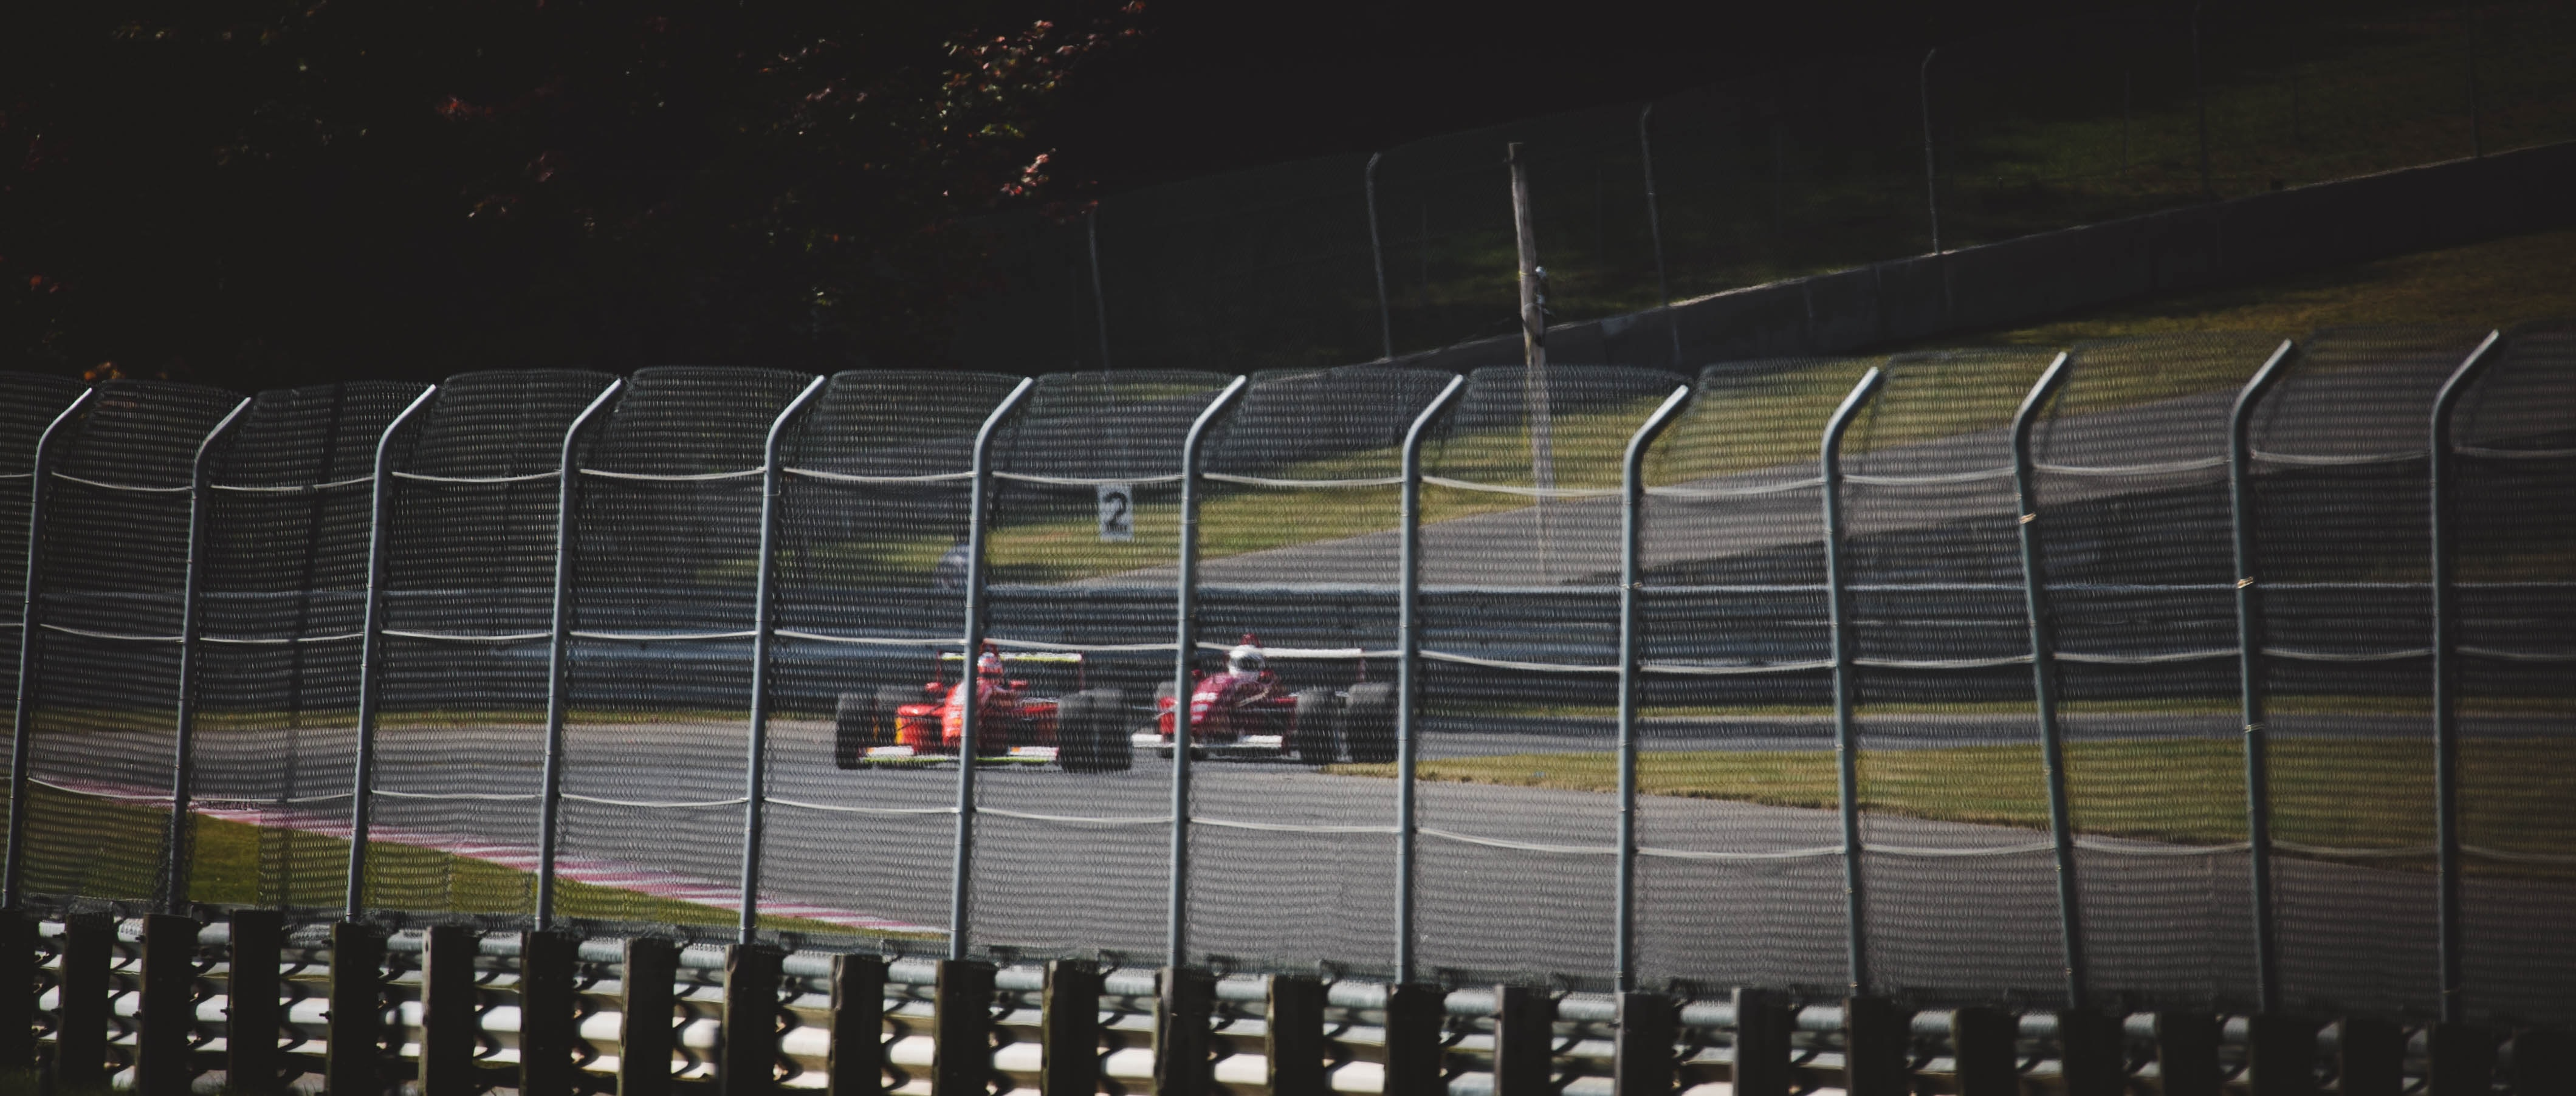 two red F1 cars on gray racetrack during daytime